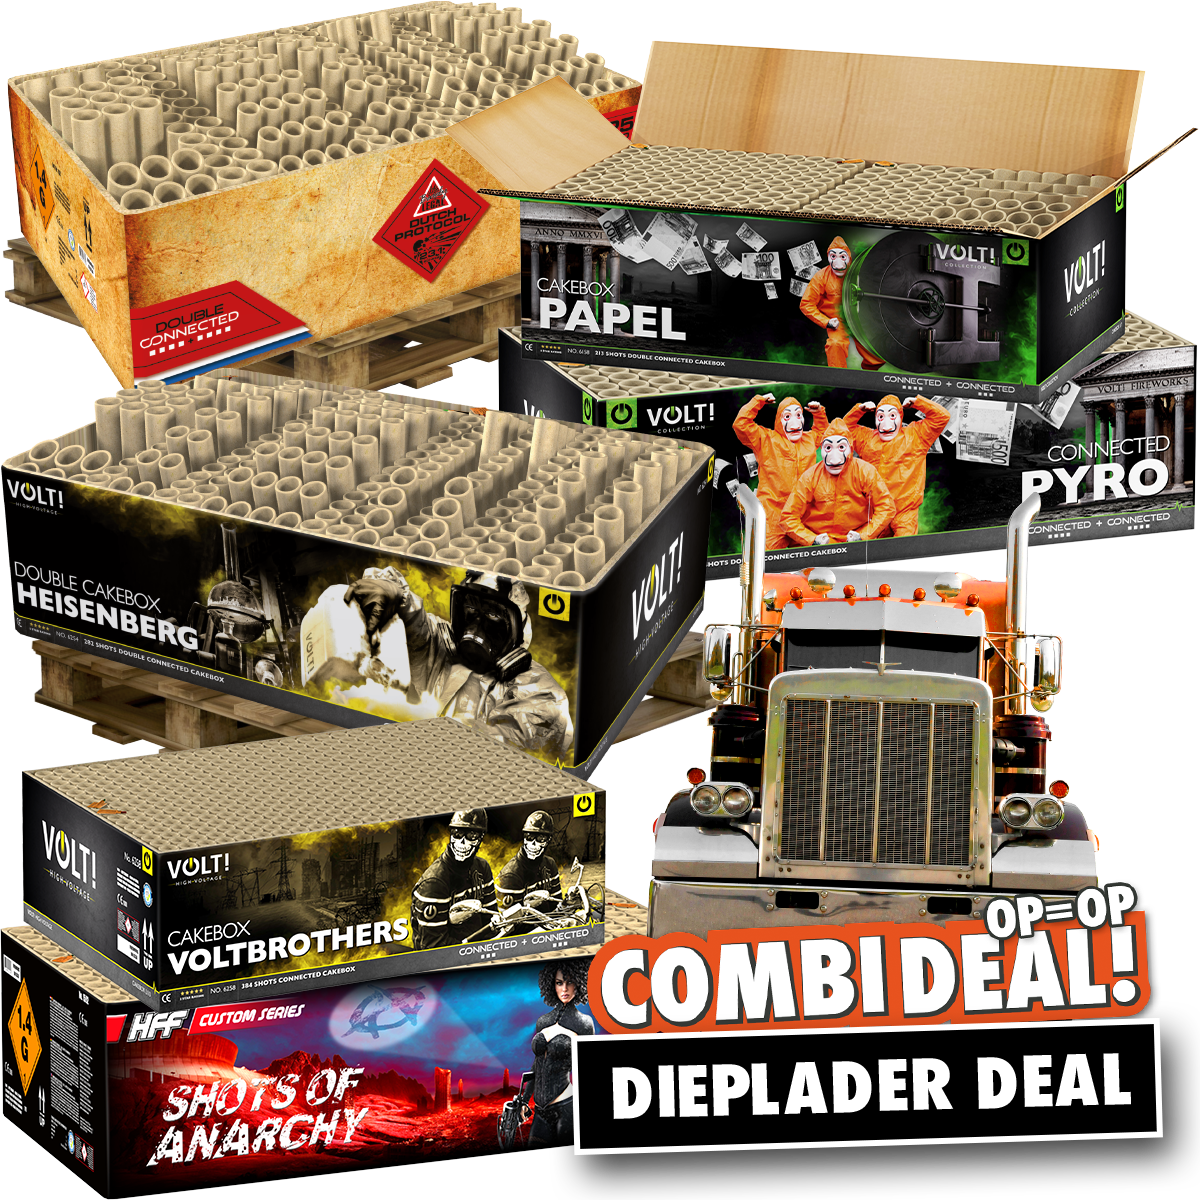 Combi deal dieplader deal